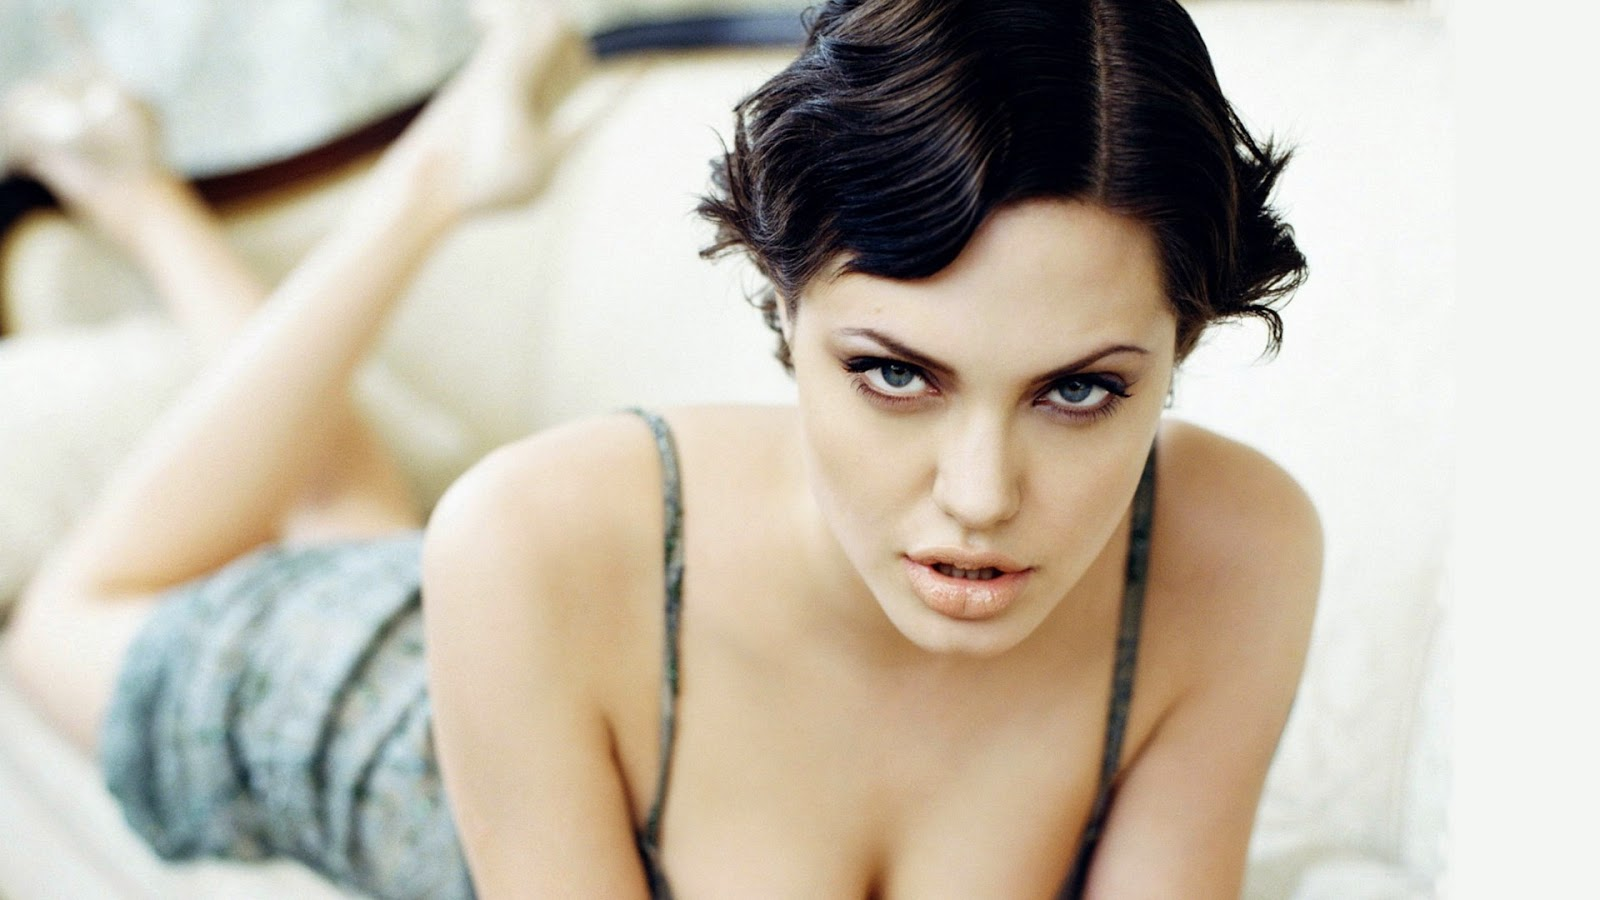 Hollywood Actress Angelina Jolie hot pose Images